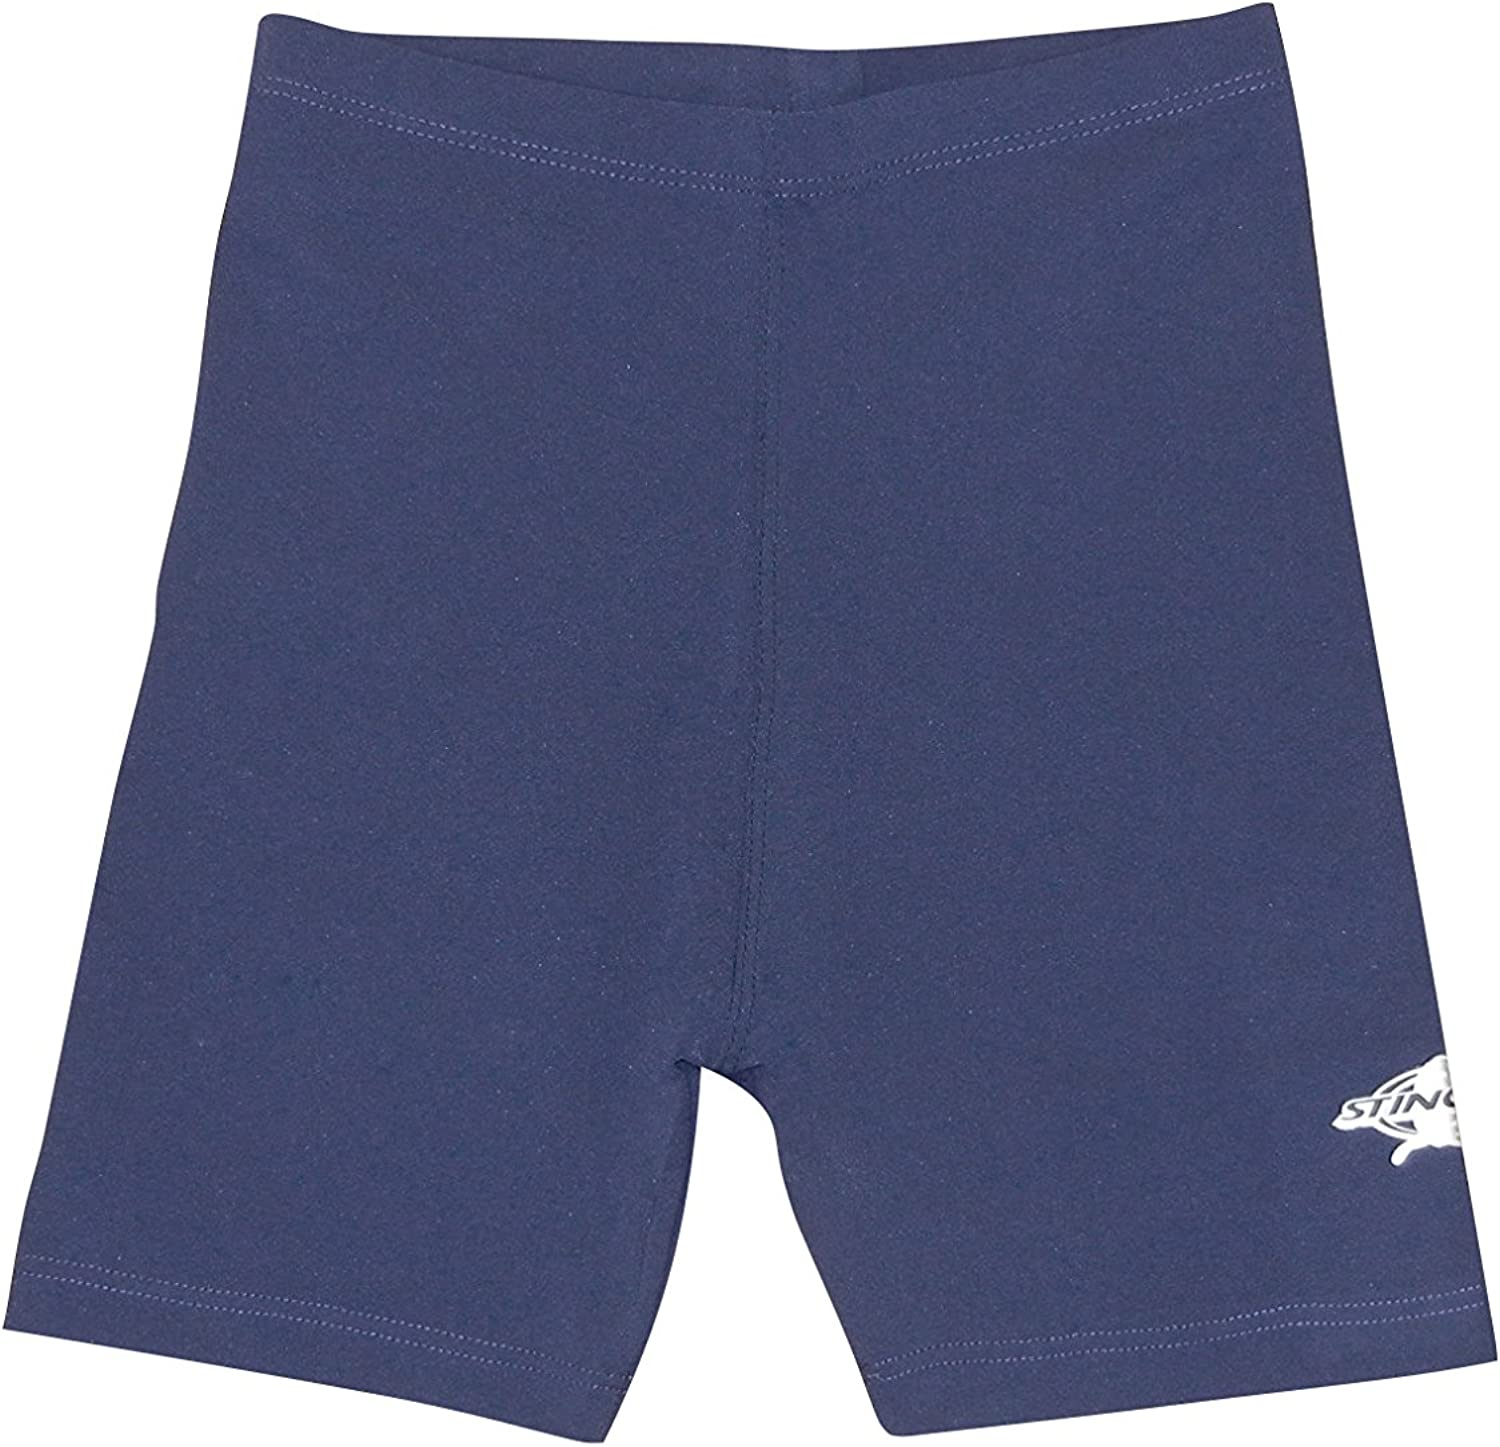 Stingray Girls Sun Protection Jammer Swim Shorts Pink and Navy